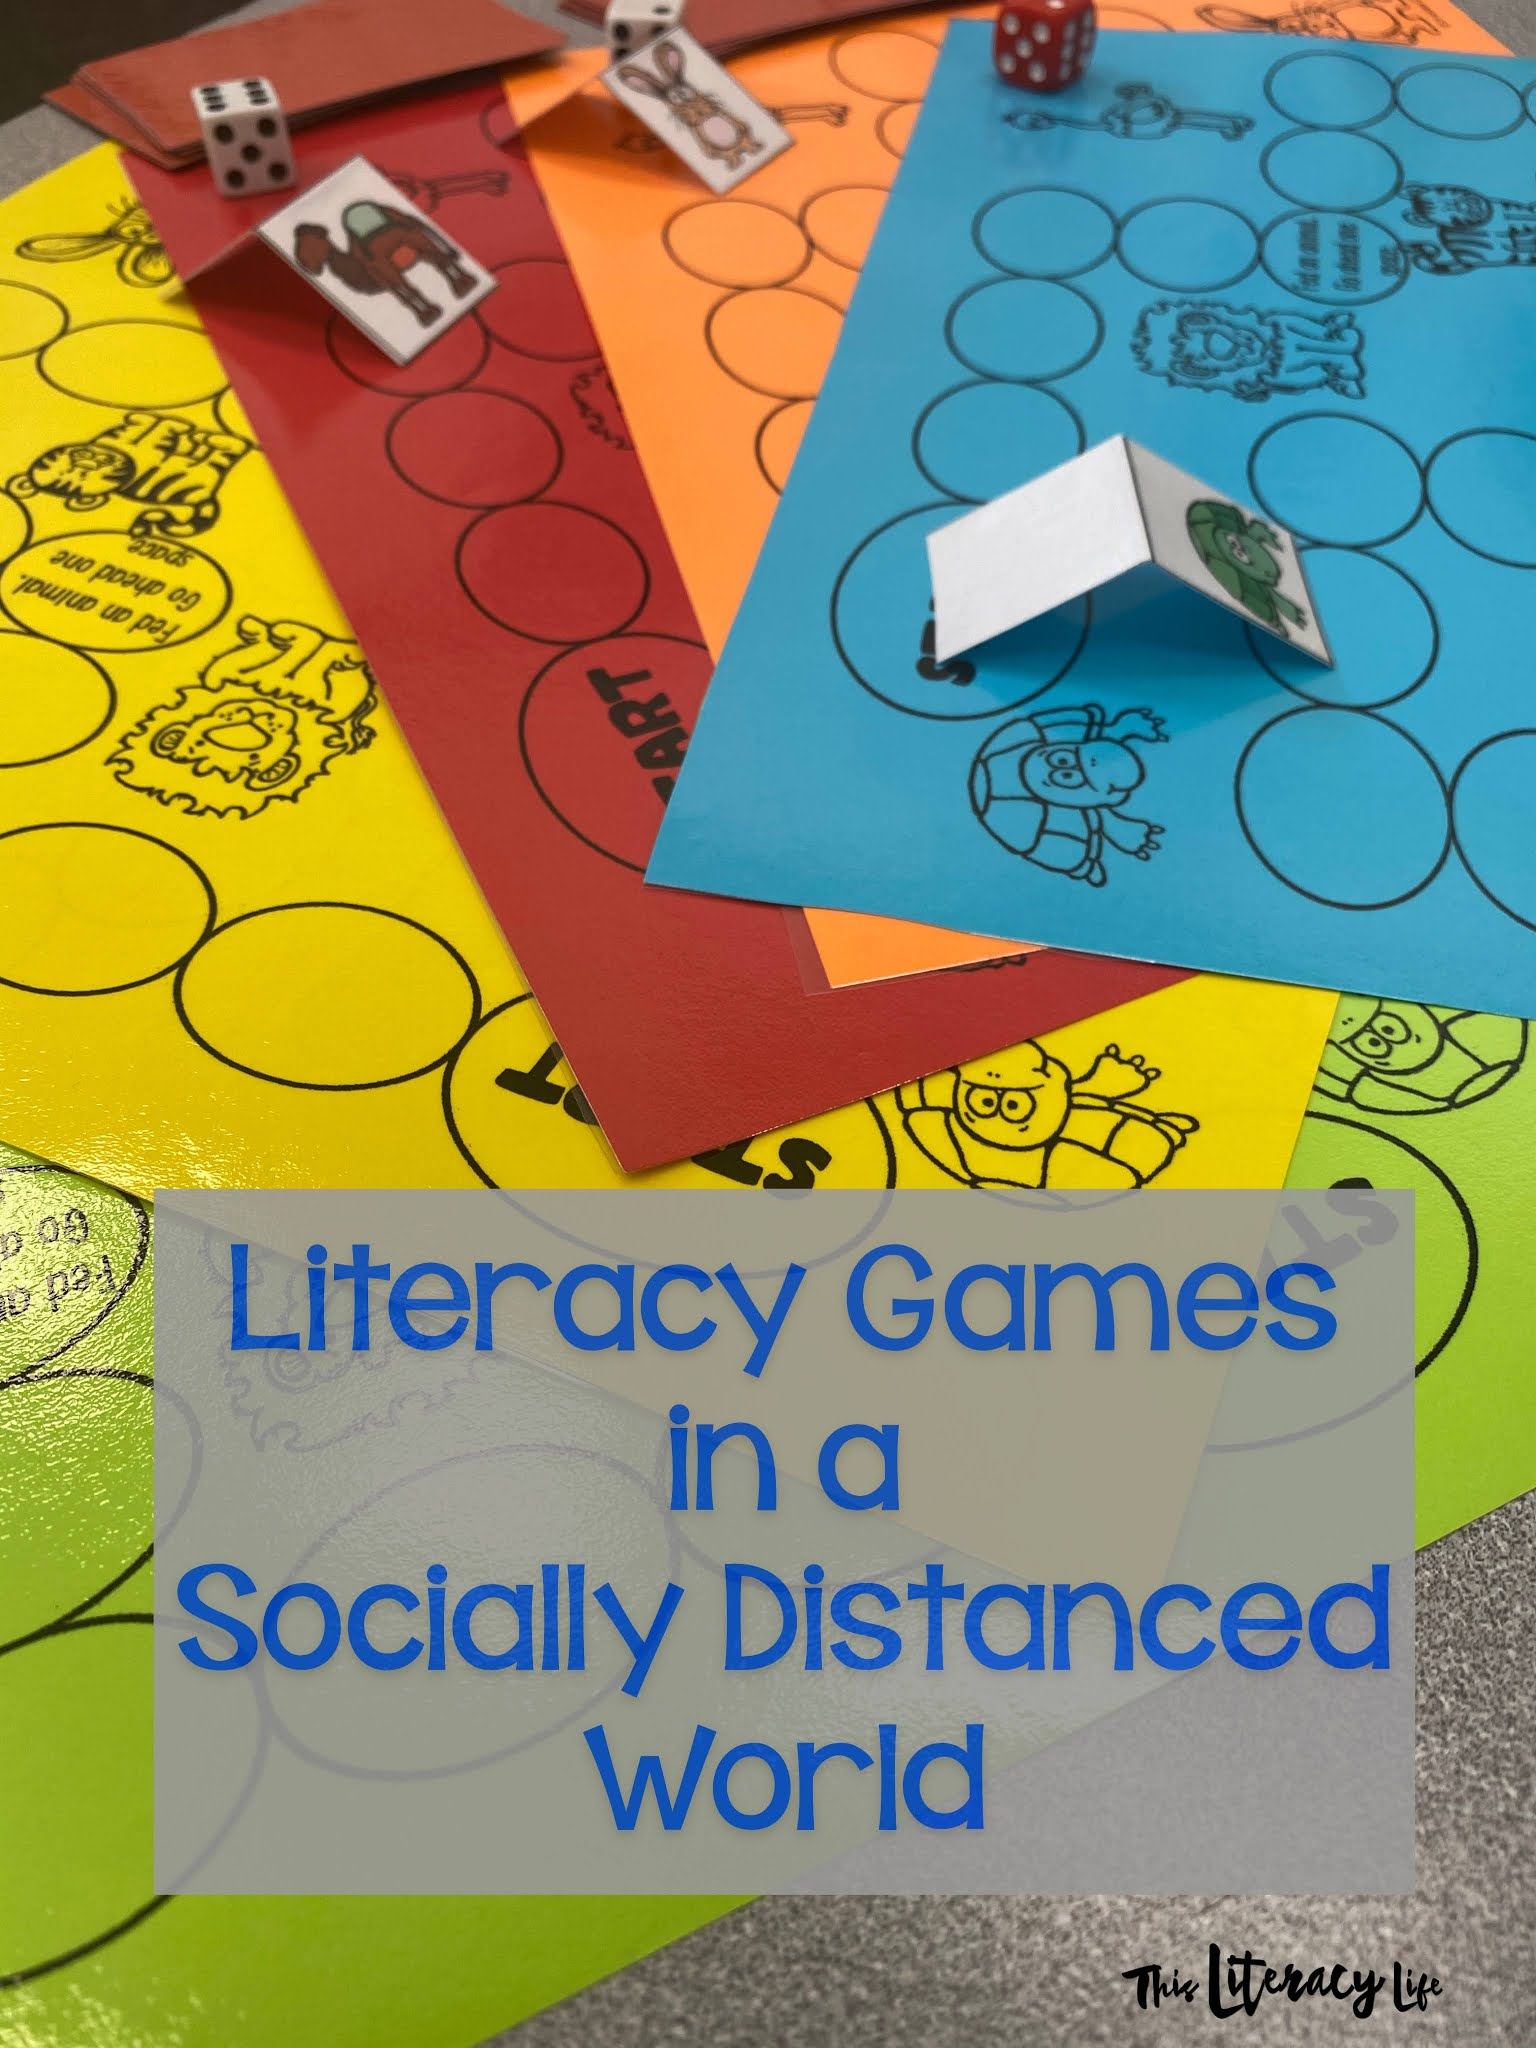 Literacy Games in a Socially Distanced World